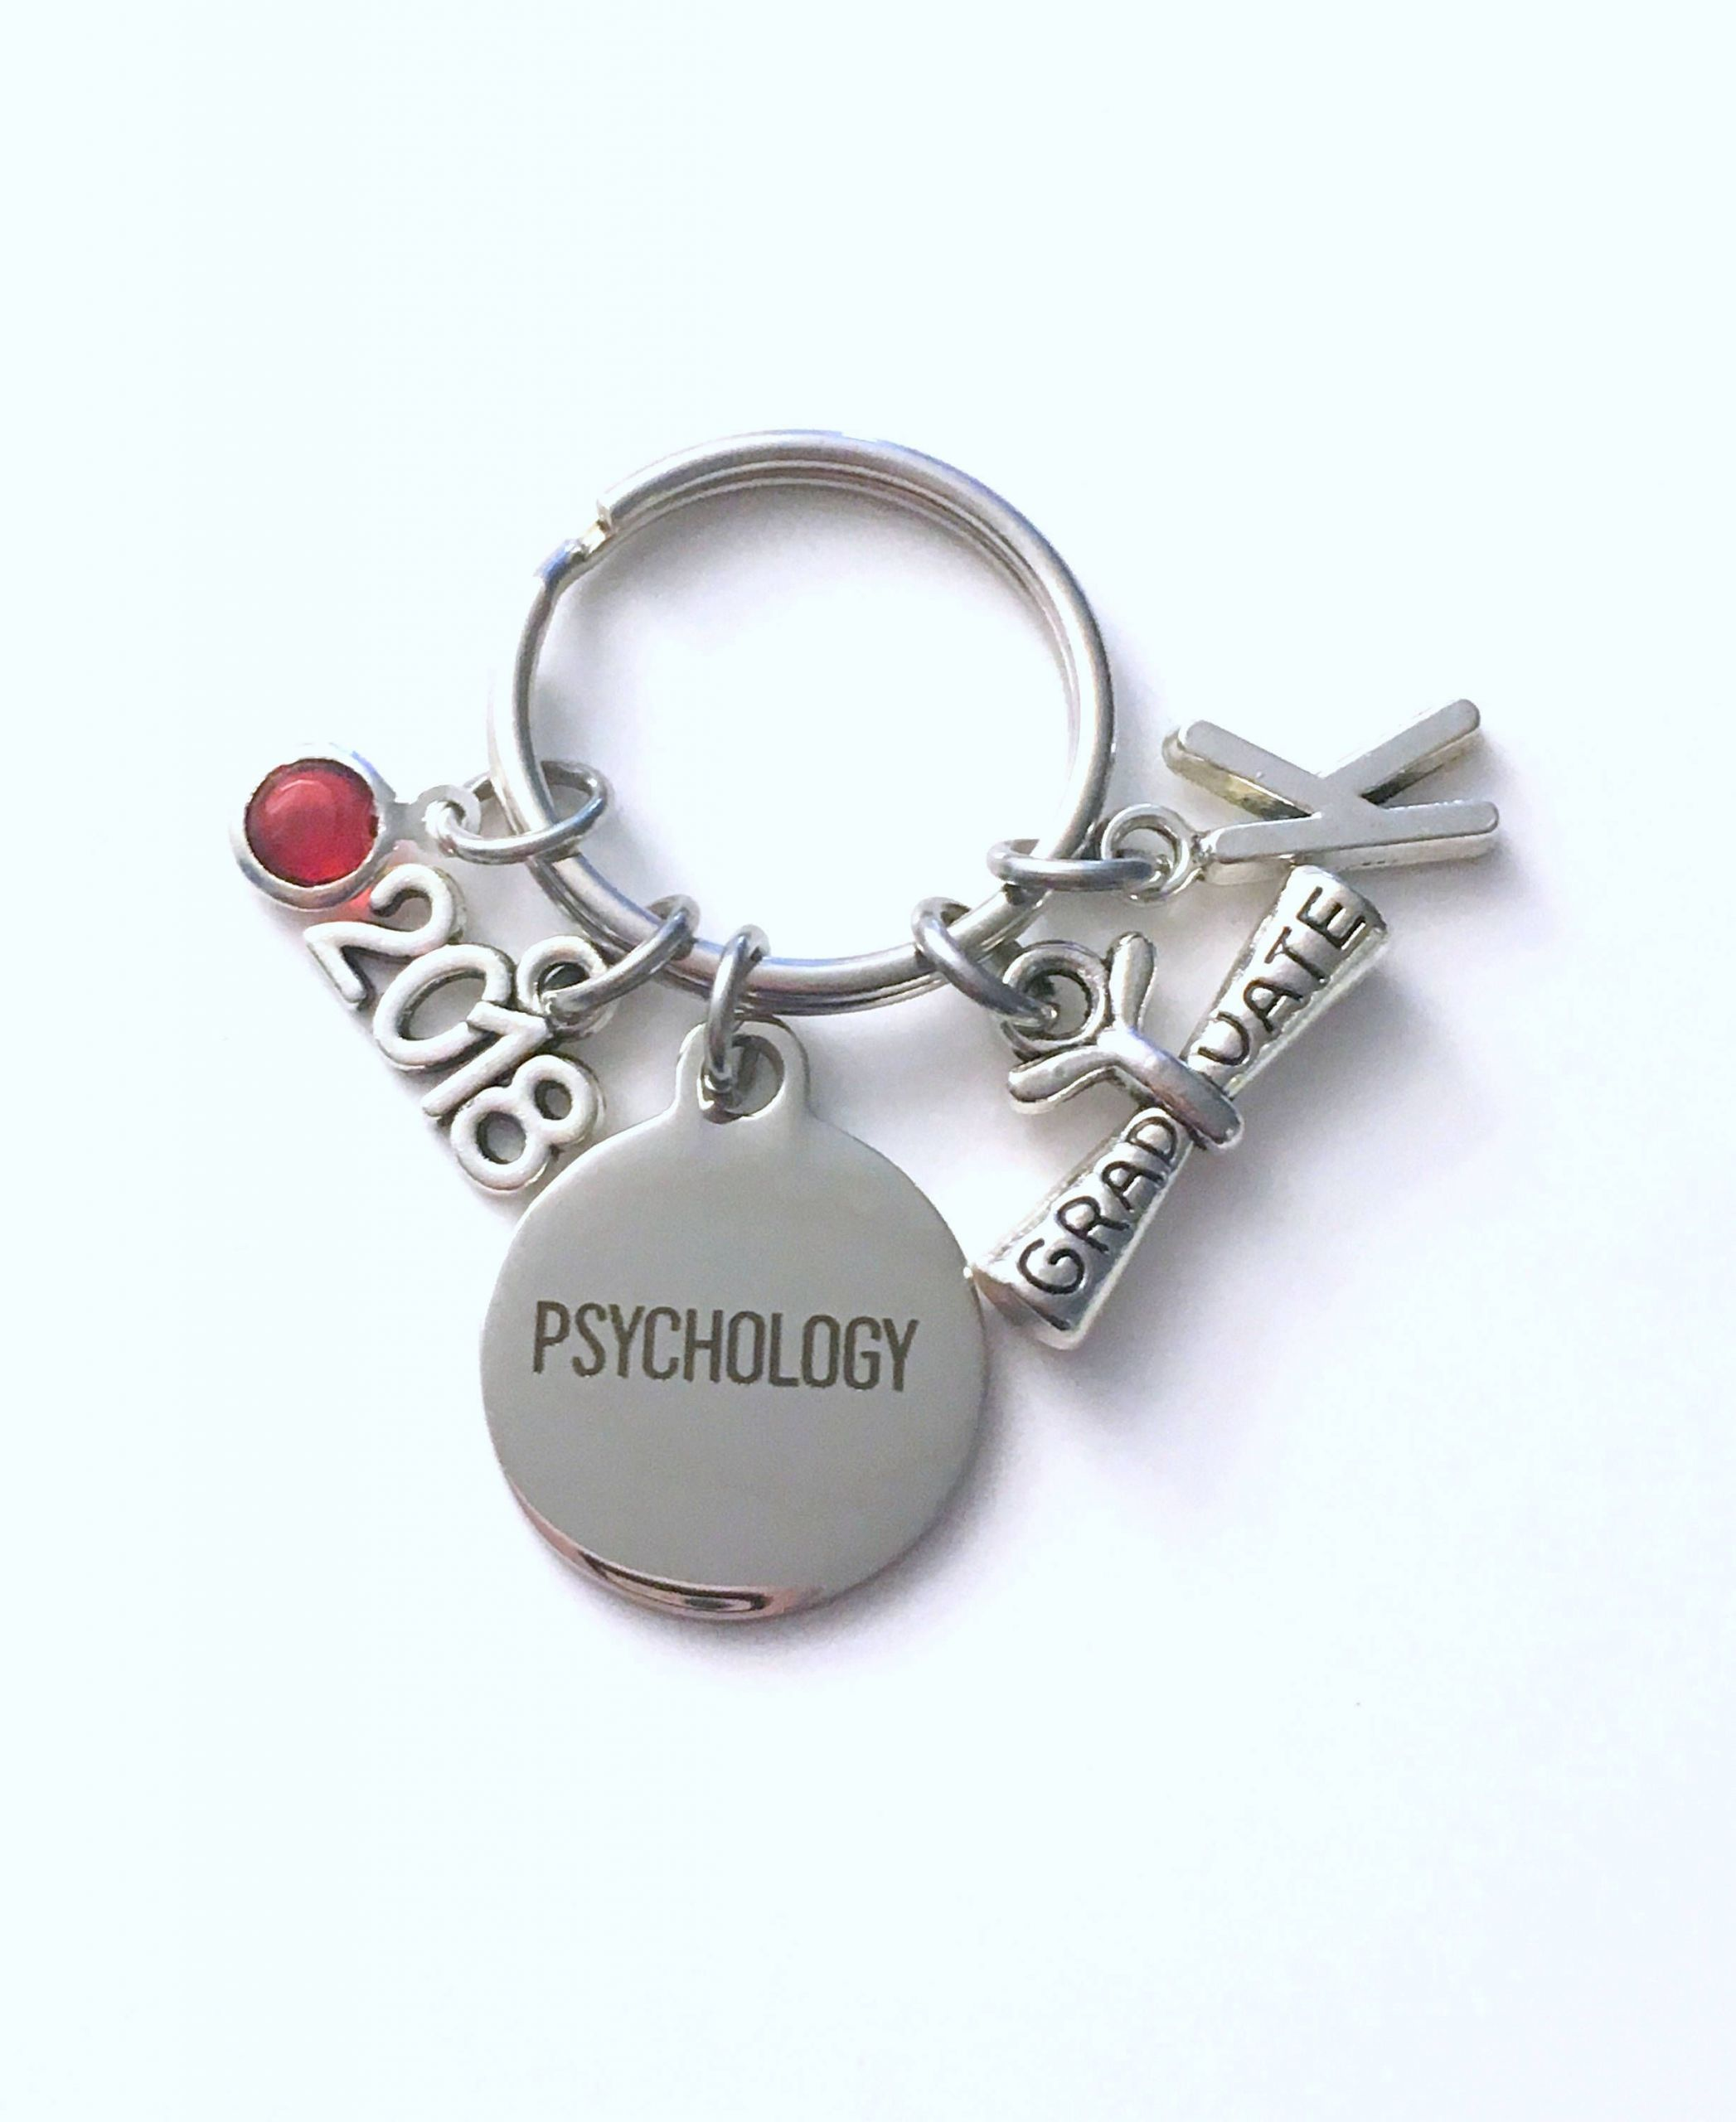 Psychology Graduation Gift Ideas  Graduation Gift for Psychology Keychain 2019 Psychologist